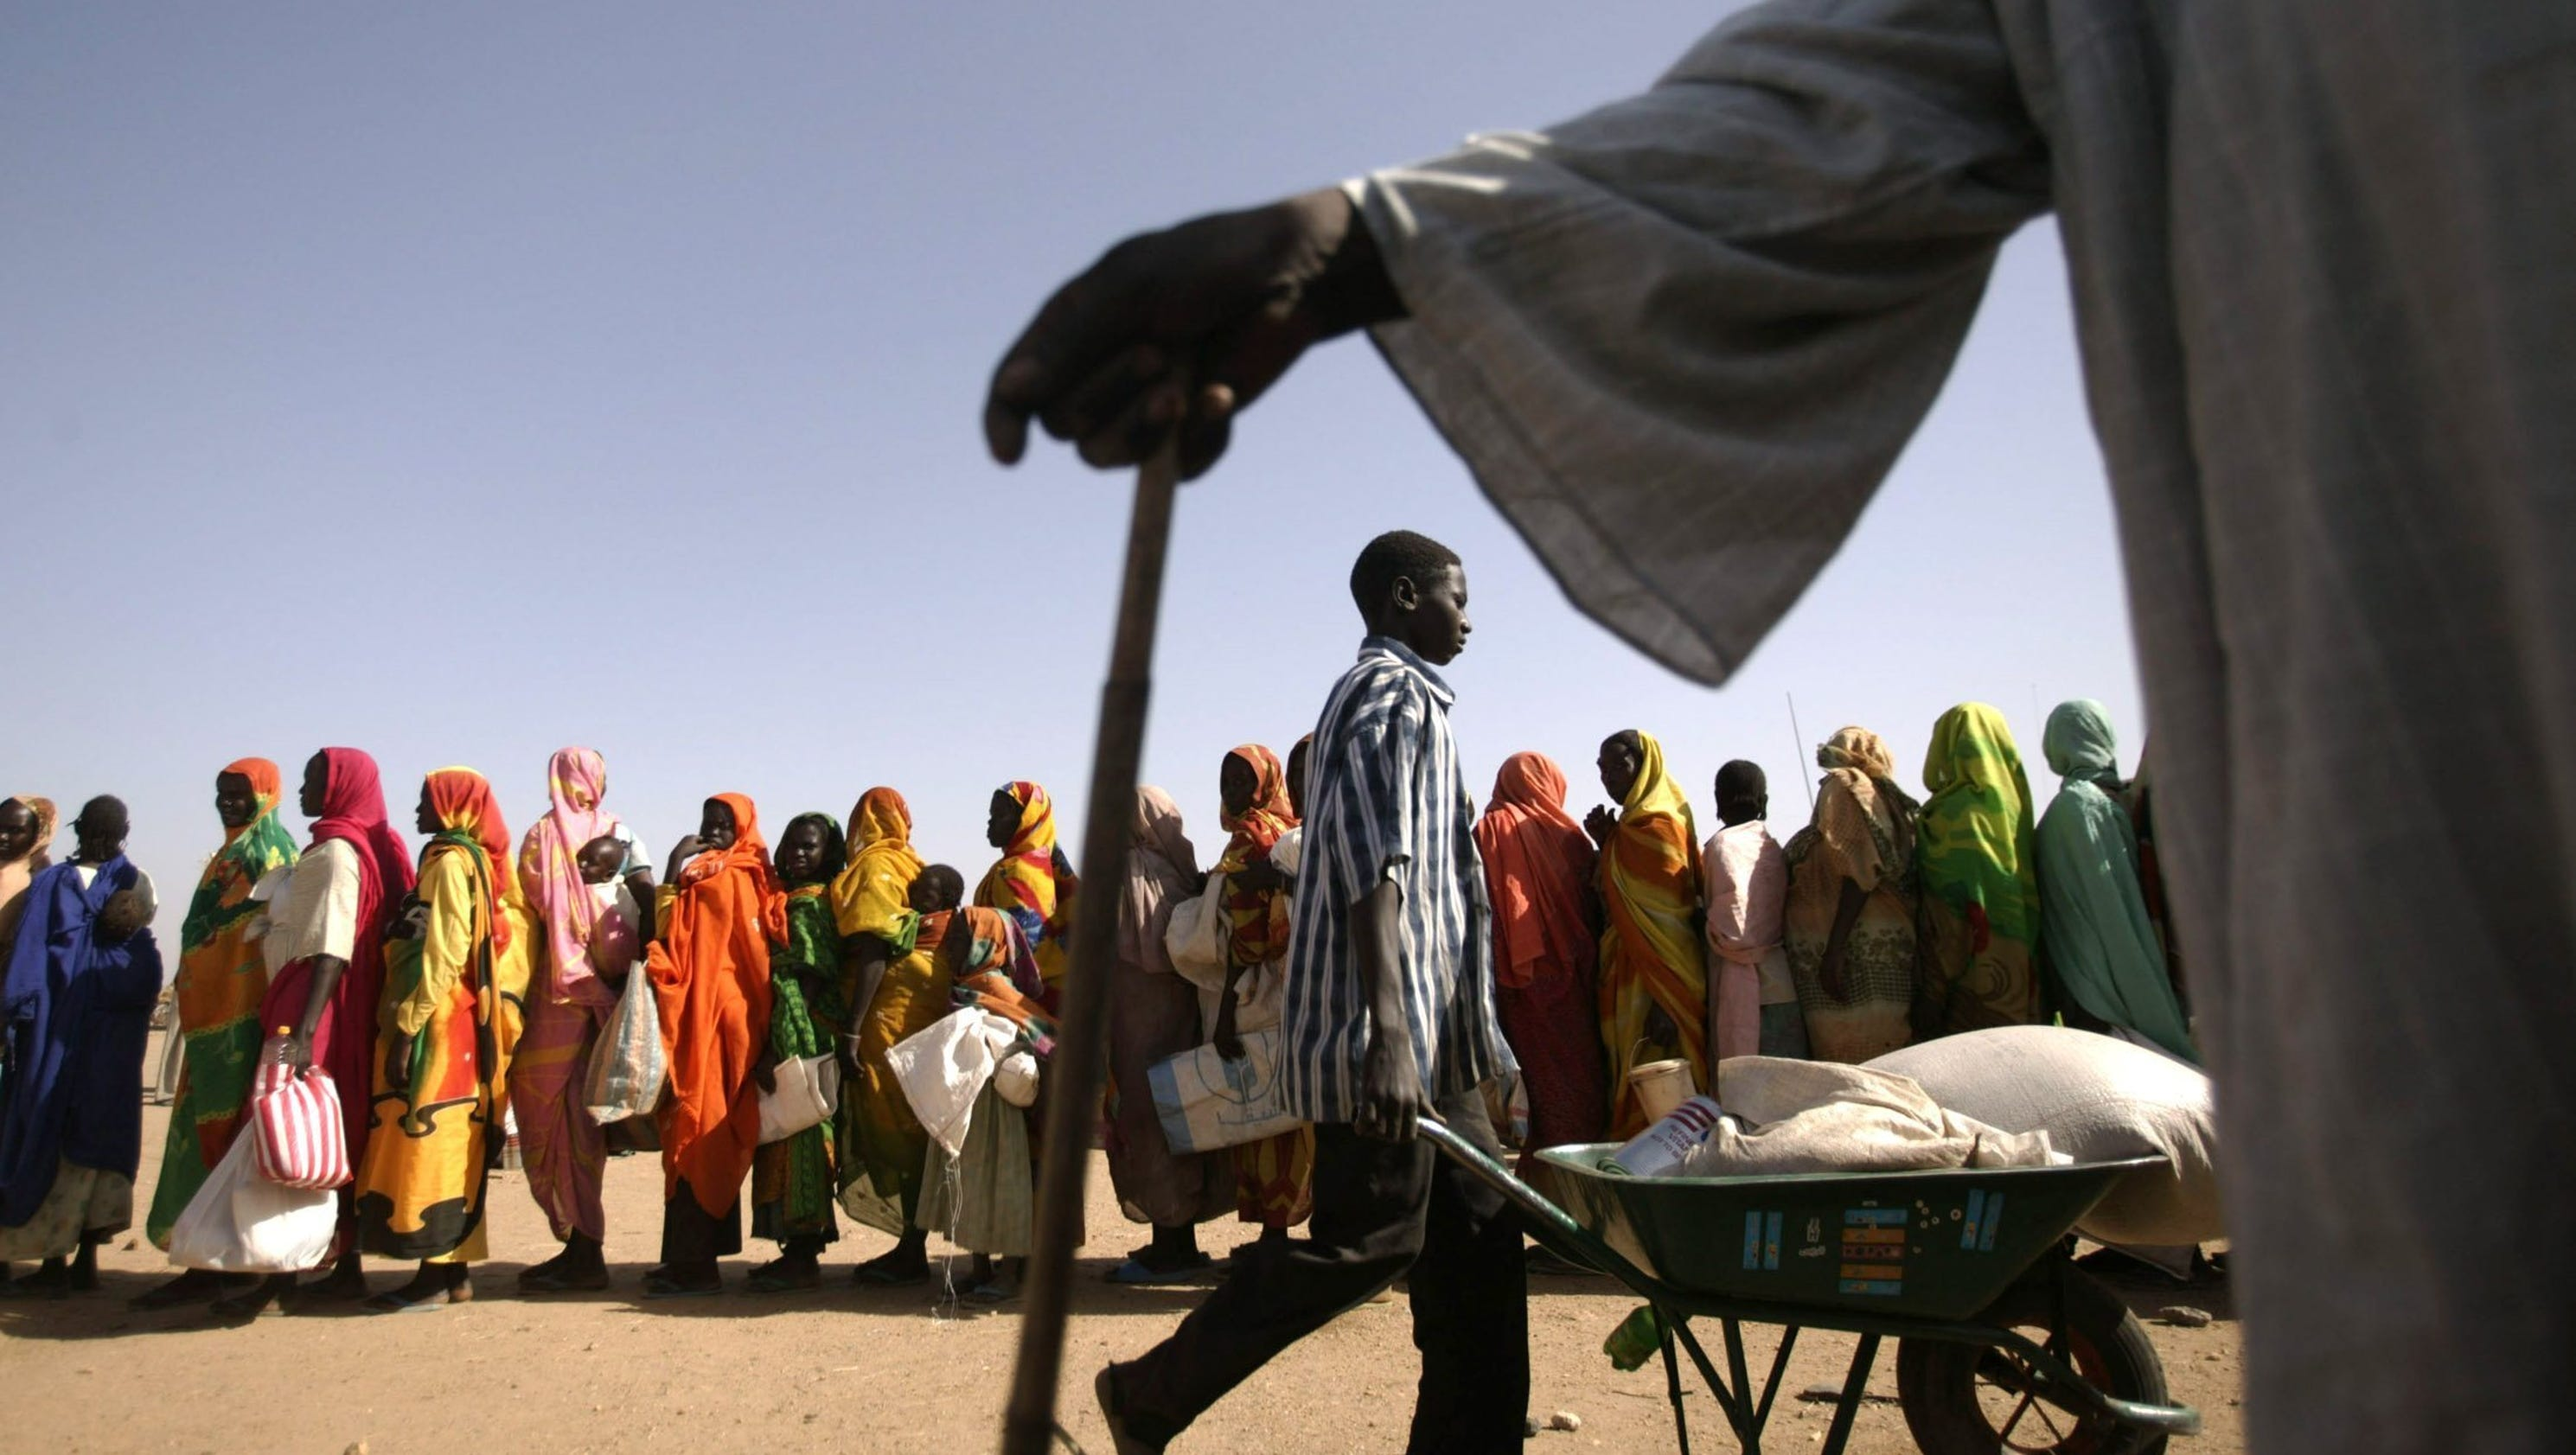 the crisis in darfur sudan Sudan's president omar al-bashir and the main rebel group in darfur, the justice and equality movement (jem), are about to sign a ceasefire it is being seen as an important step to achieving peace before a national election in april.